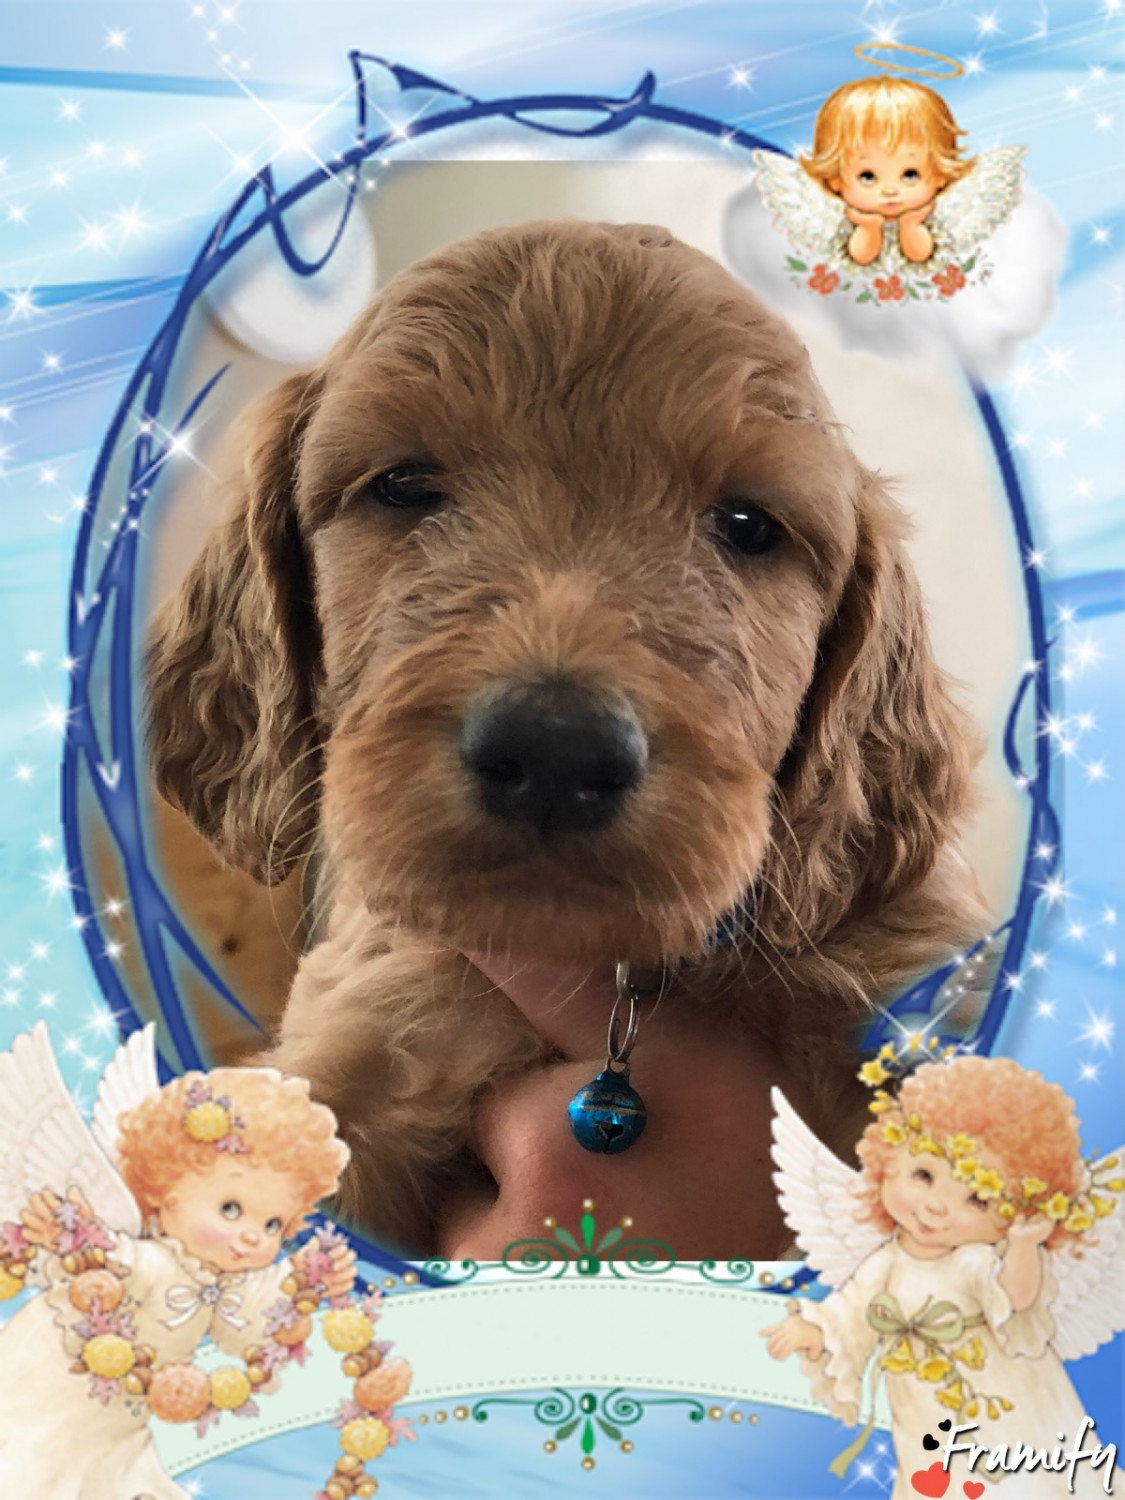 Irish Doodles Puppies For Sale Loveland Oh 282456